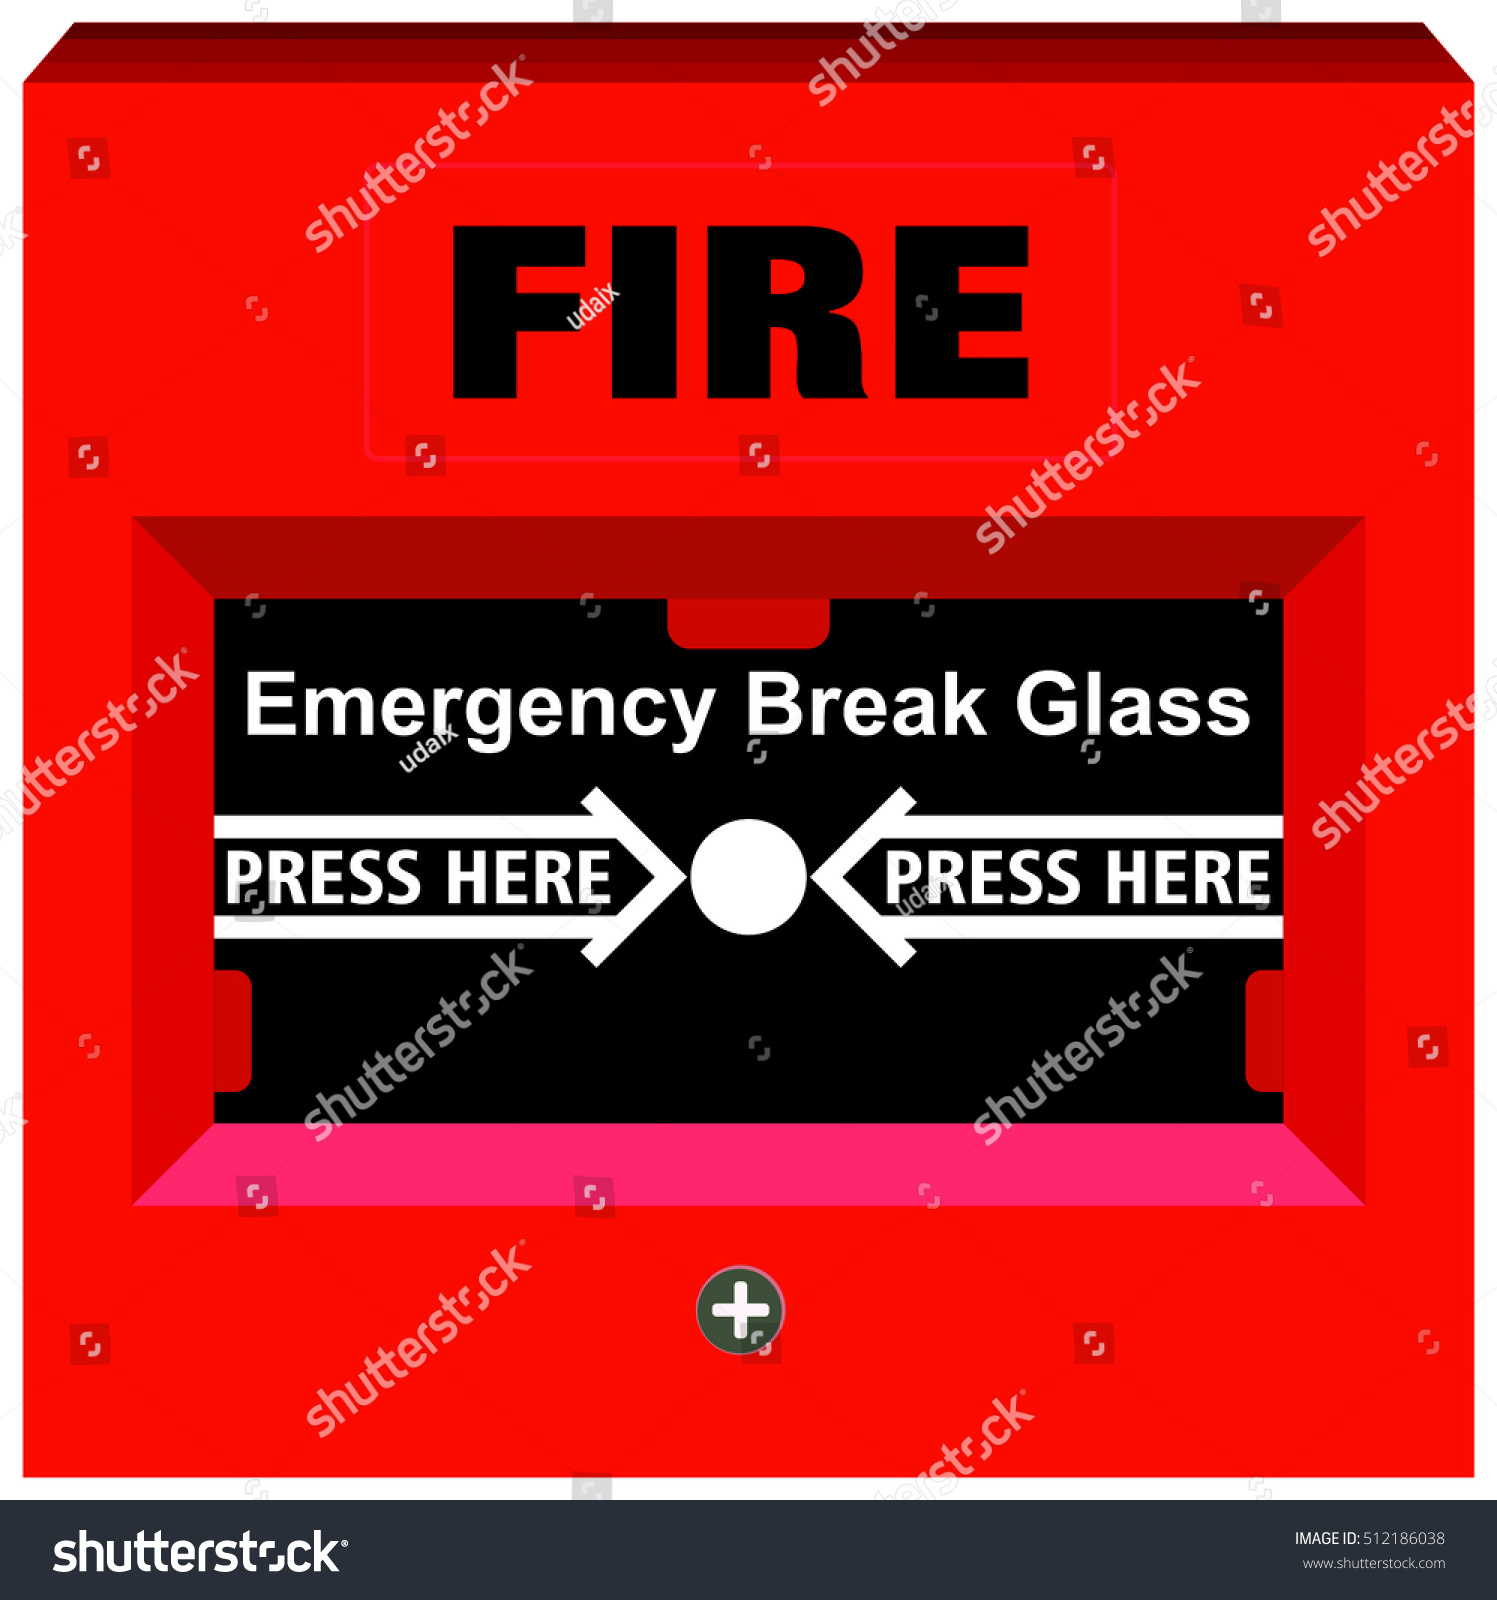 Fire Alarm Emergency Break Glass Press Stock Illustration 512186038